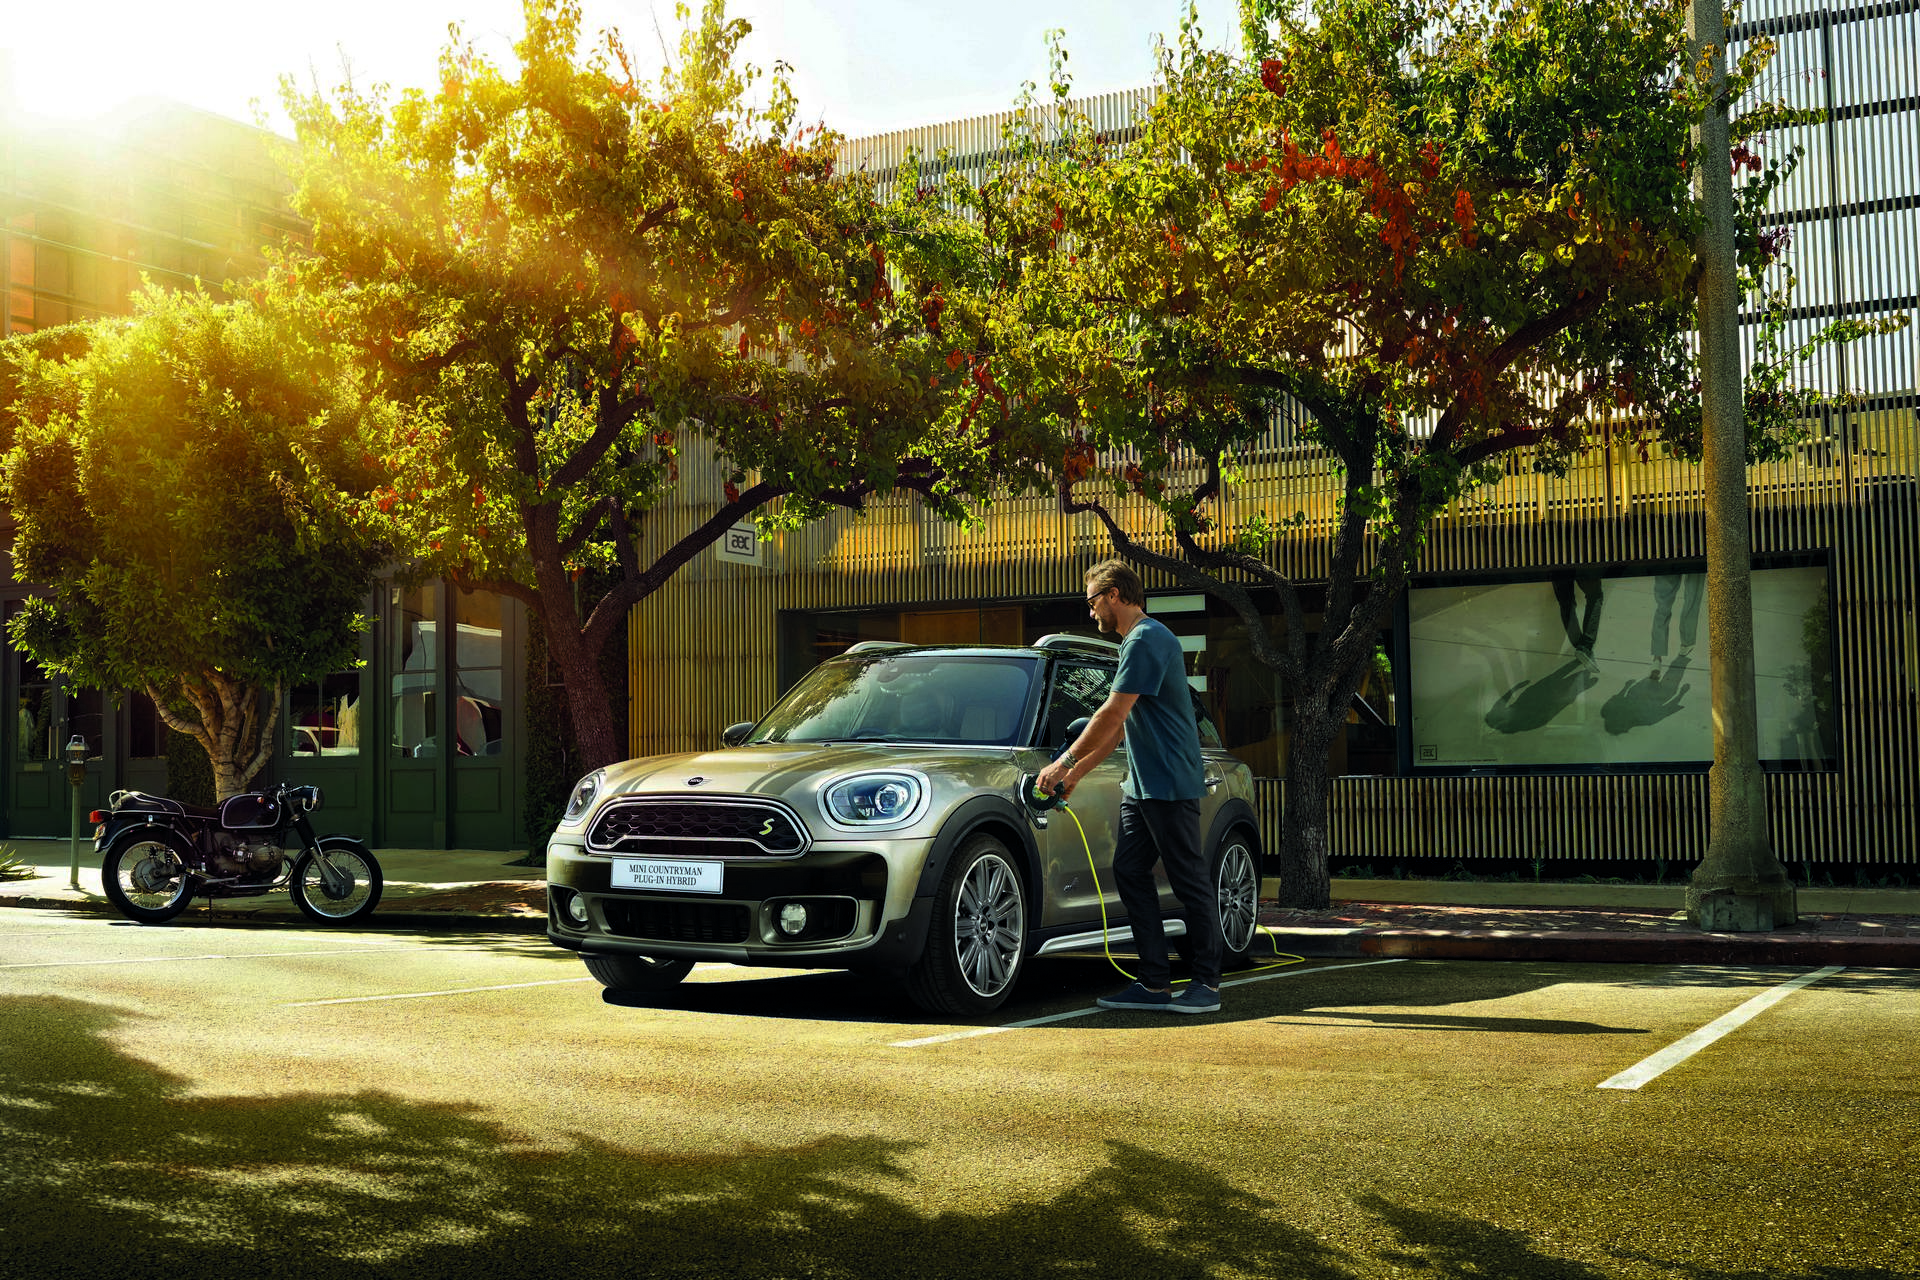 mini electrifies the countryman to go along with its electrifying driving